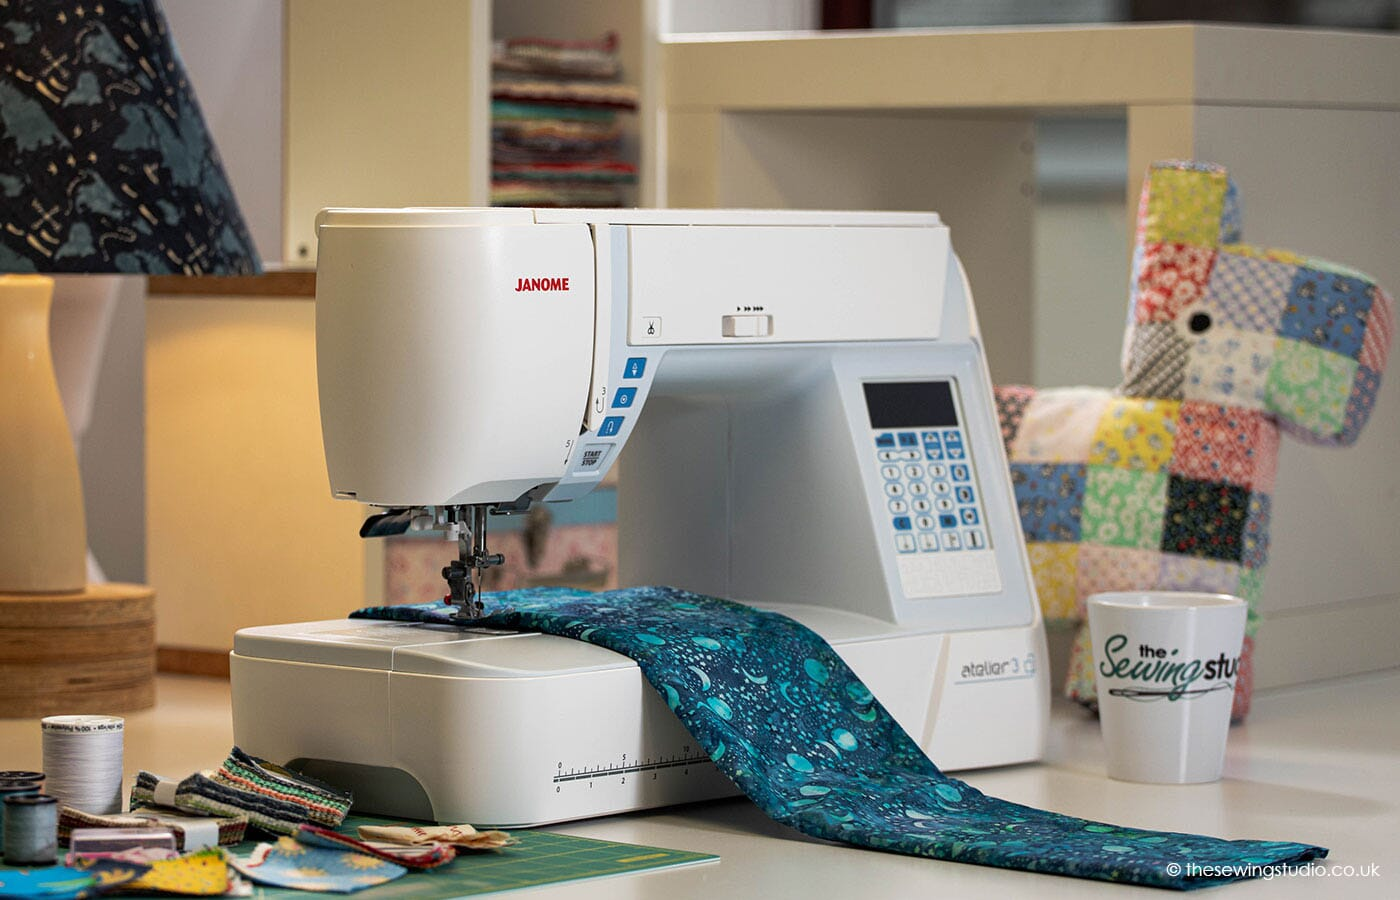 Janome Atelier 3 Sewing Machine in a Sewing Room